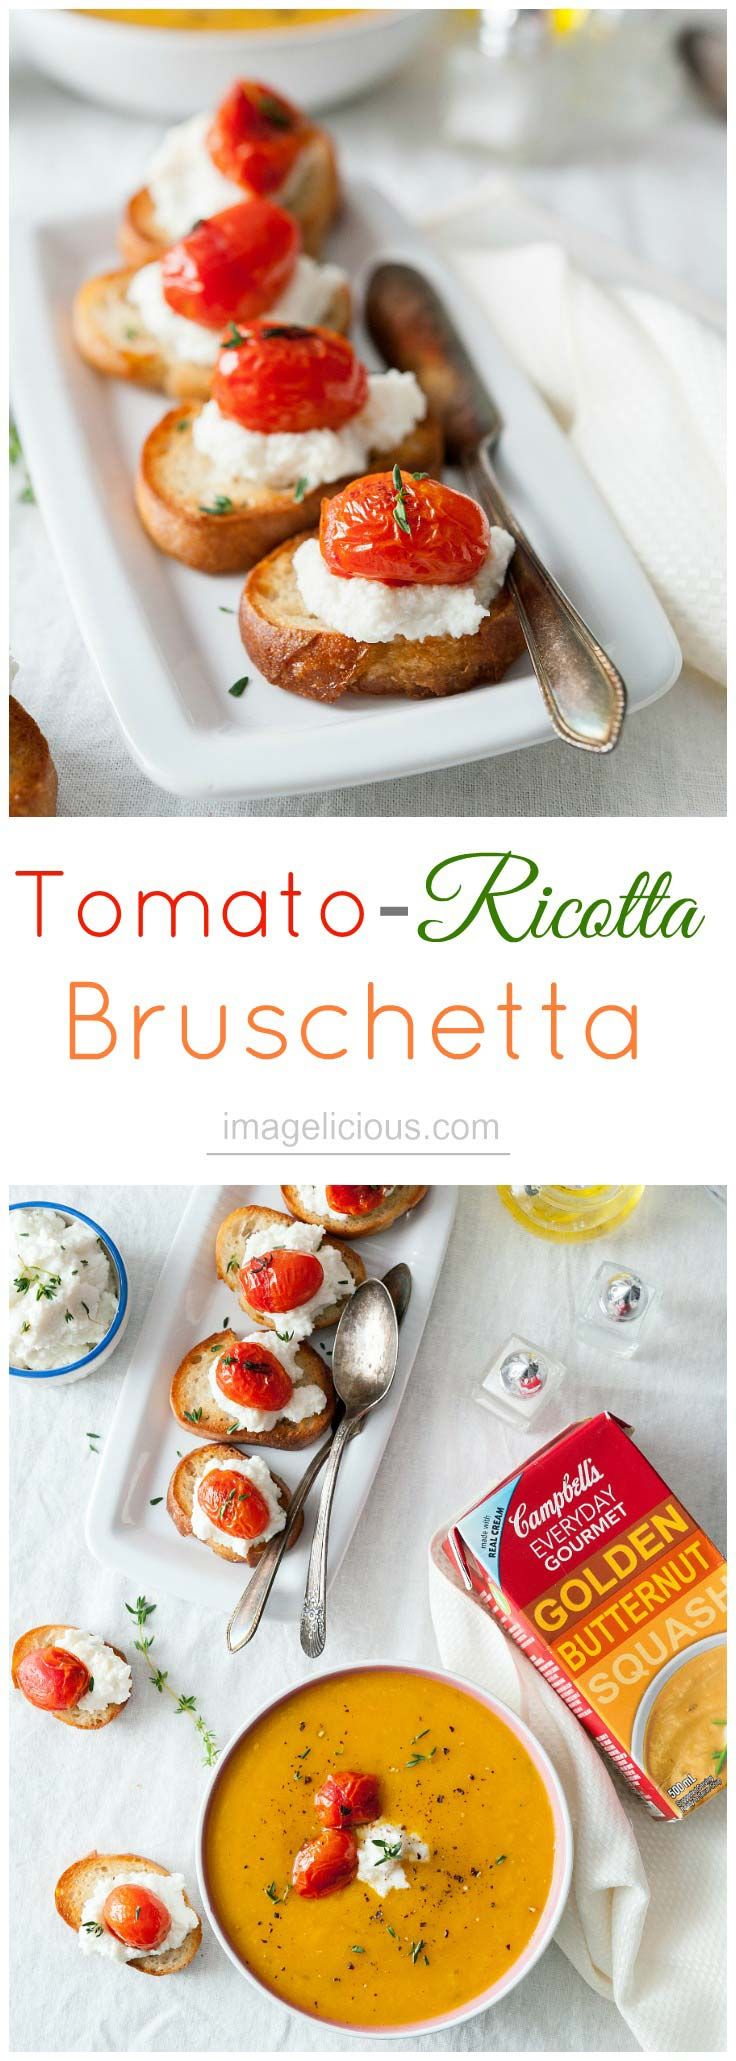 Tomato-Ricotta Bruschetta - crusty baguette topped with creamy ricotta and tangy tomatoes perfect accompaniment to Campbell's Everyday Gourmet Golden Butternut Squash Soup   Imagelicious #sponsored